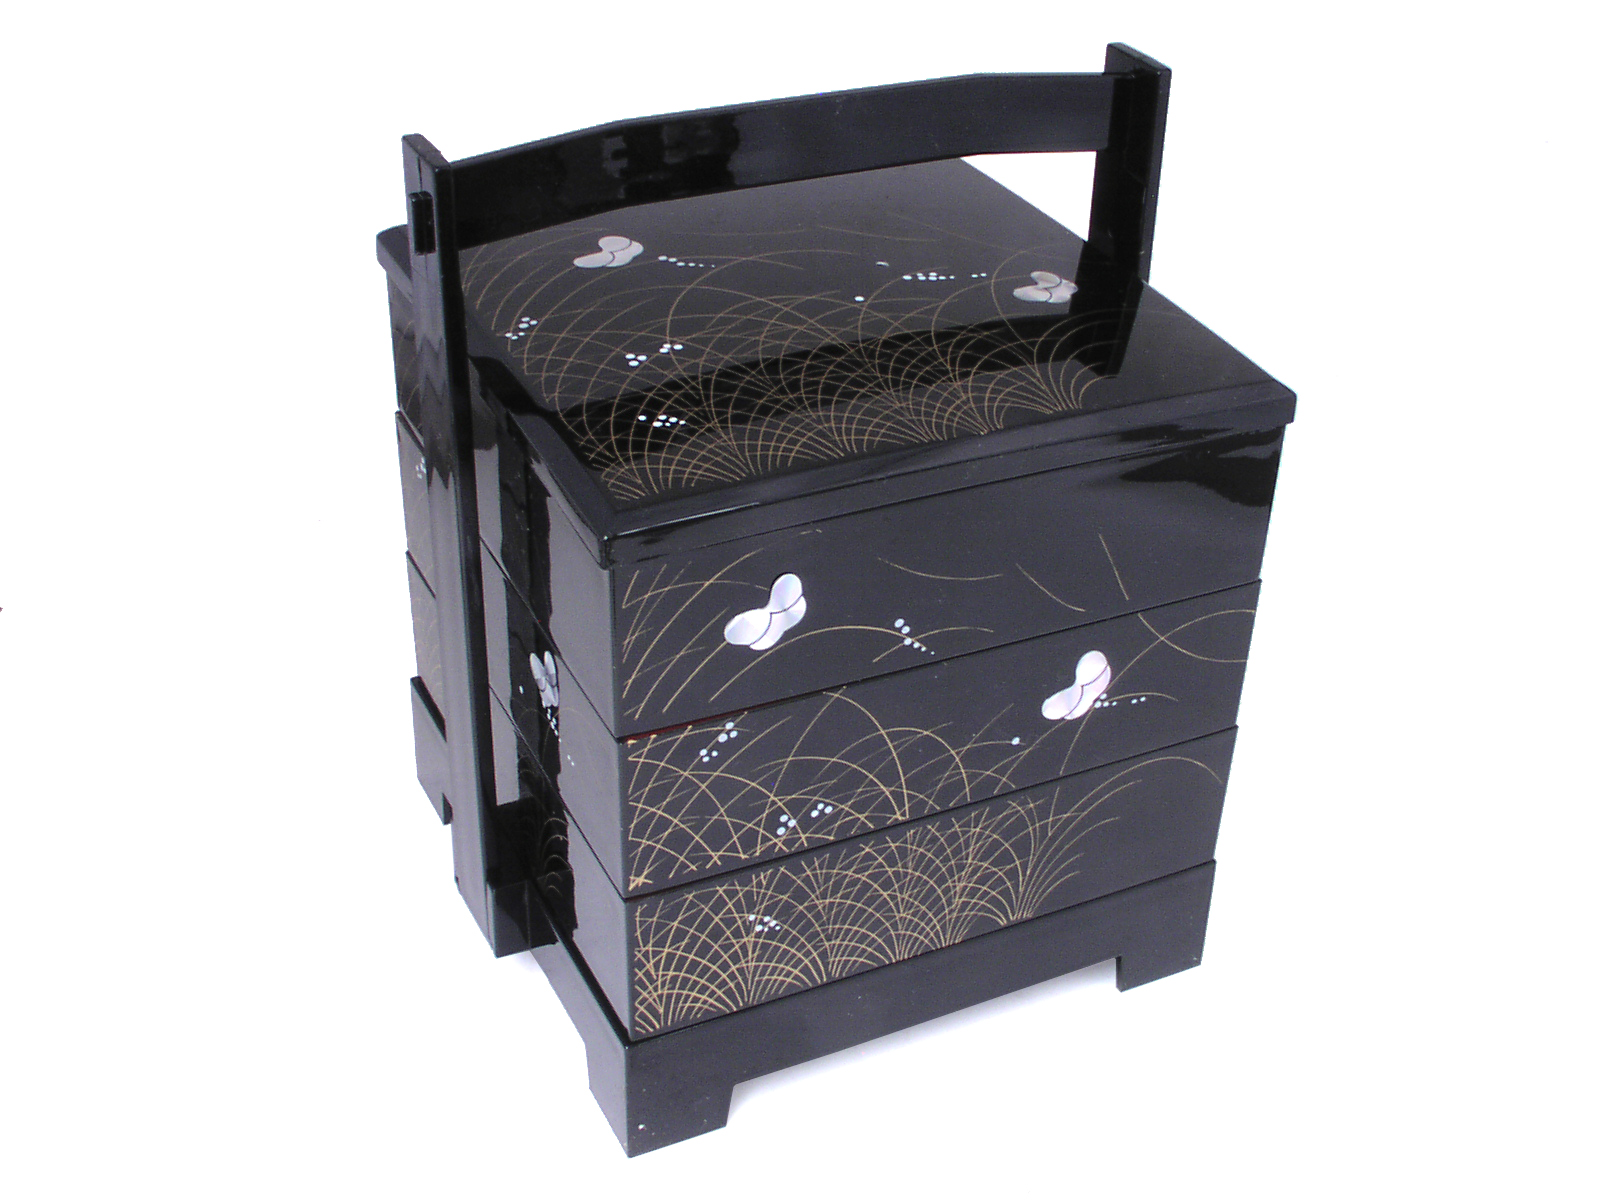 bento boxes japanese lunch boxes for sale. Black Bedroom Furniture Sets. Home Design Ideas